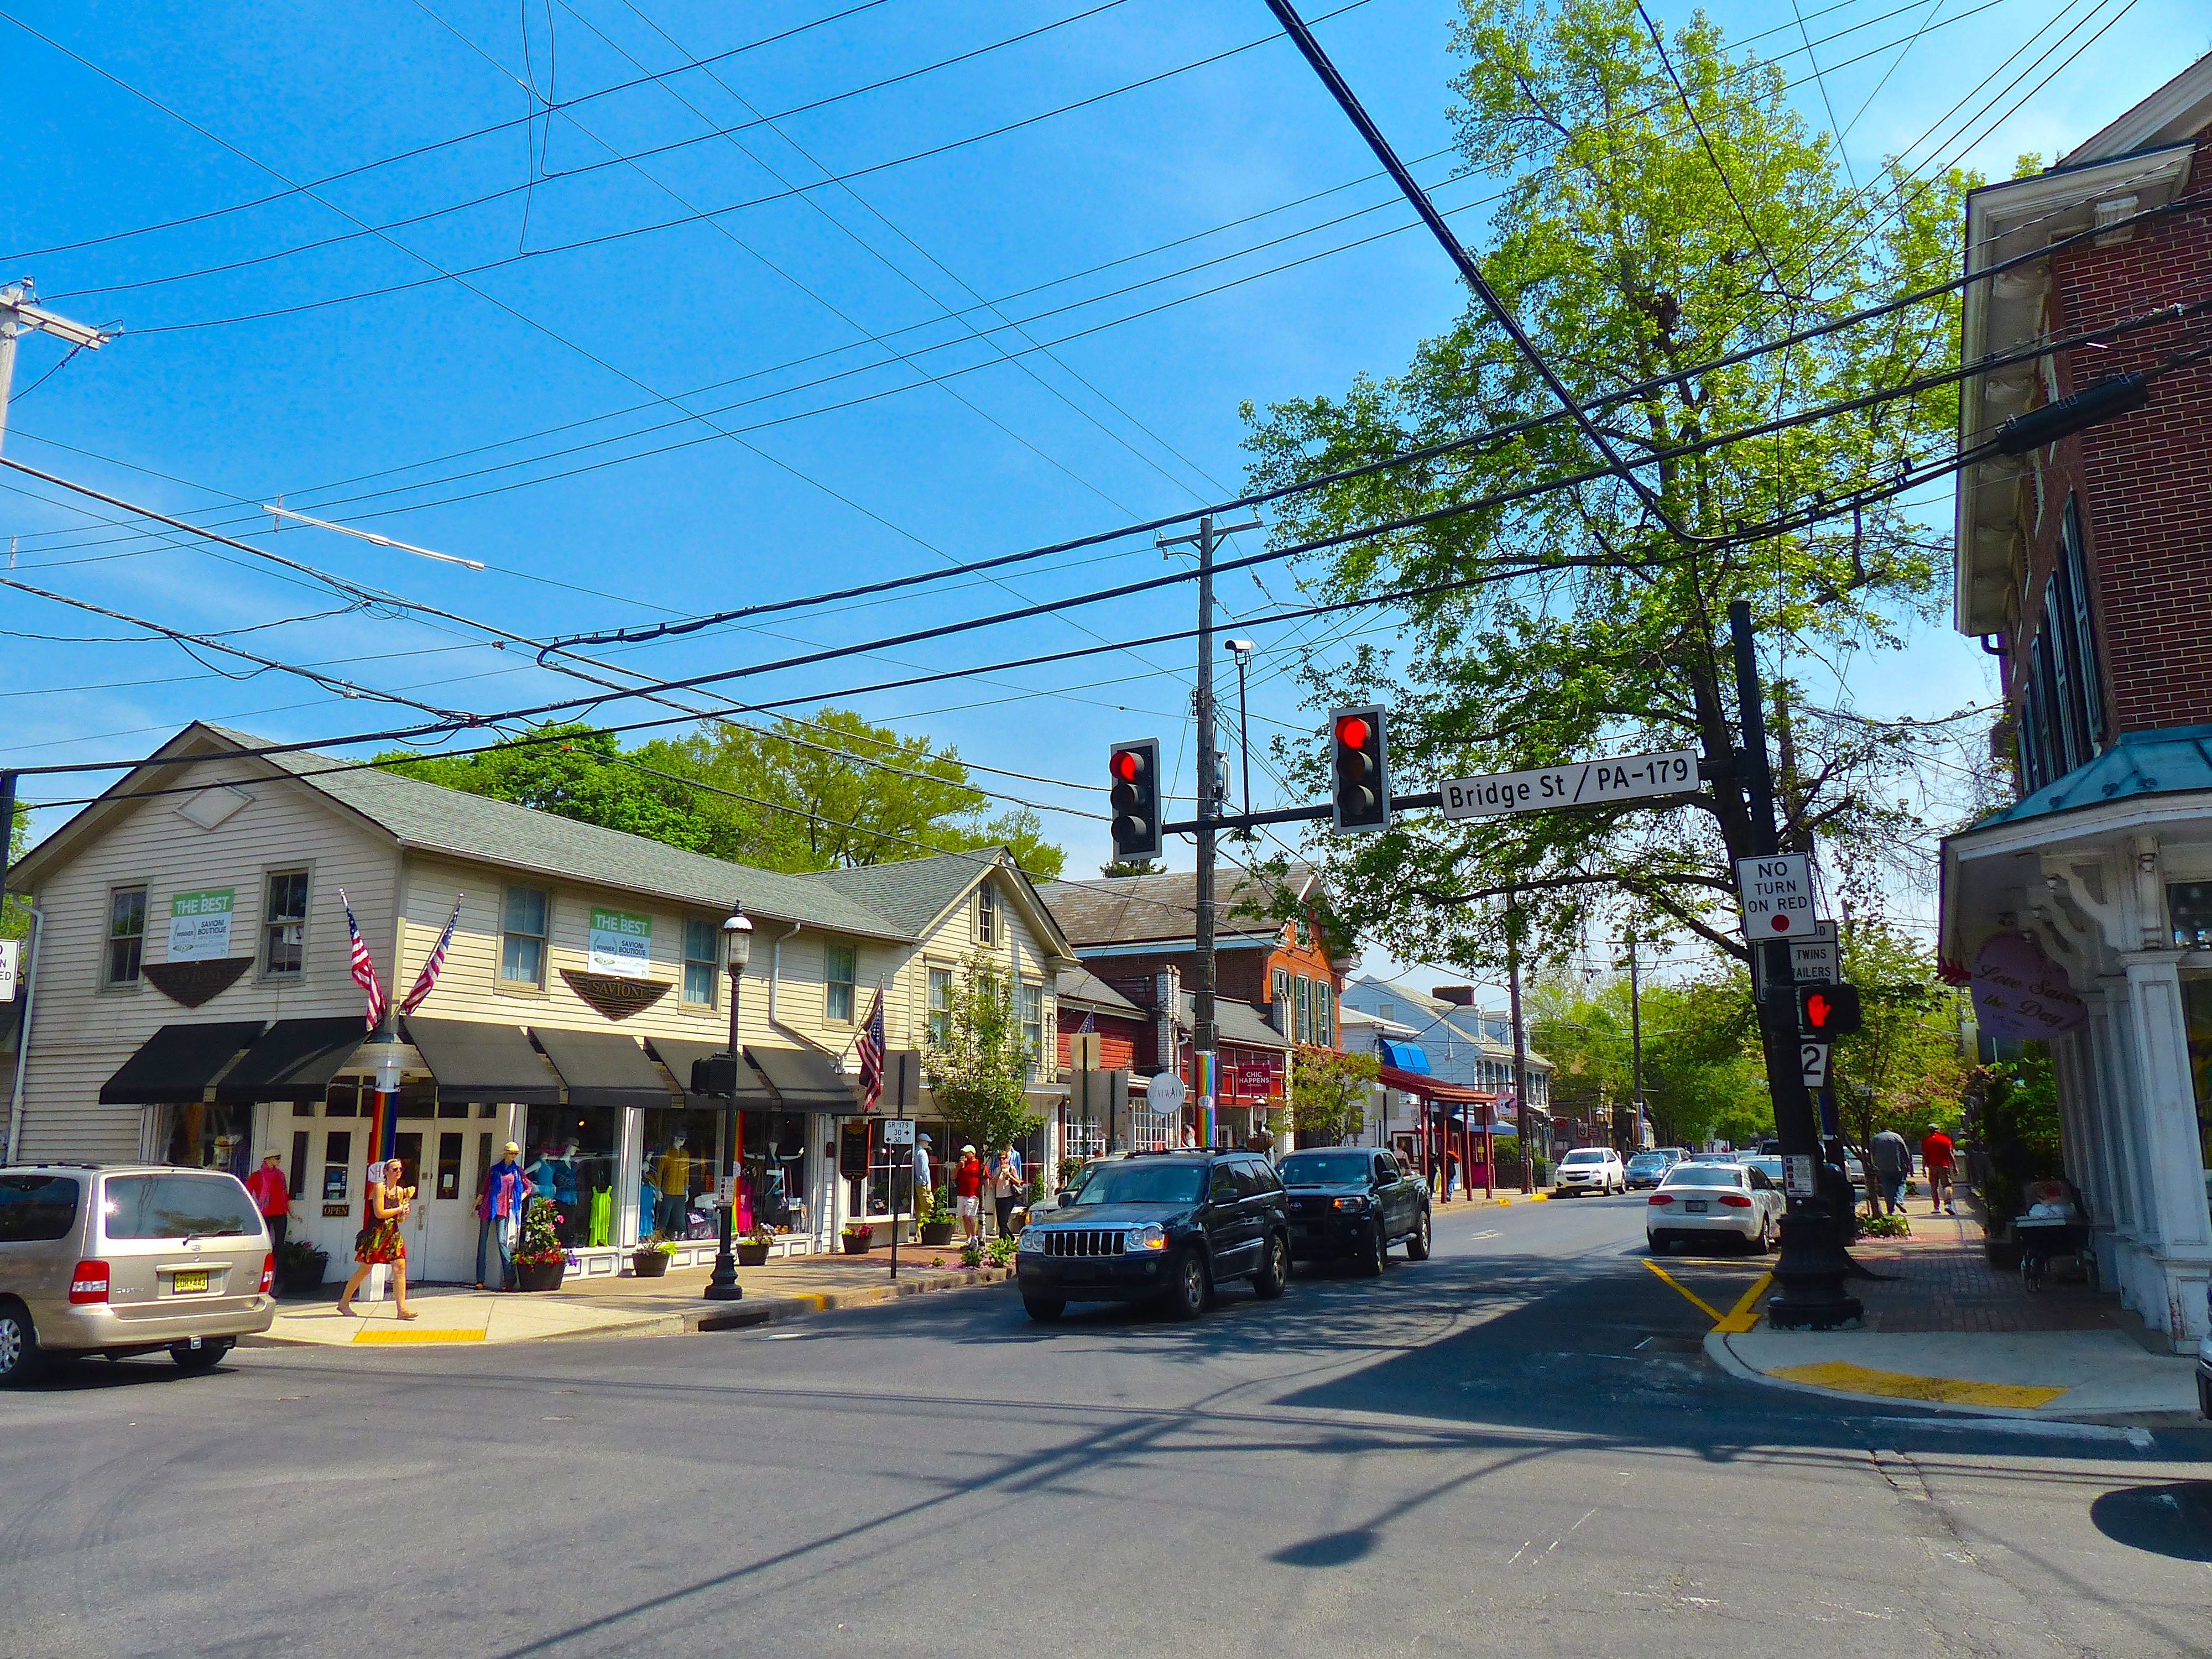 New Hope Downtown Pa Pictures To Pin On Pinterest Pinsdaddy